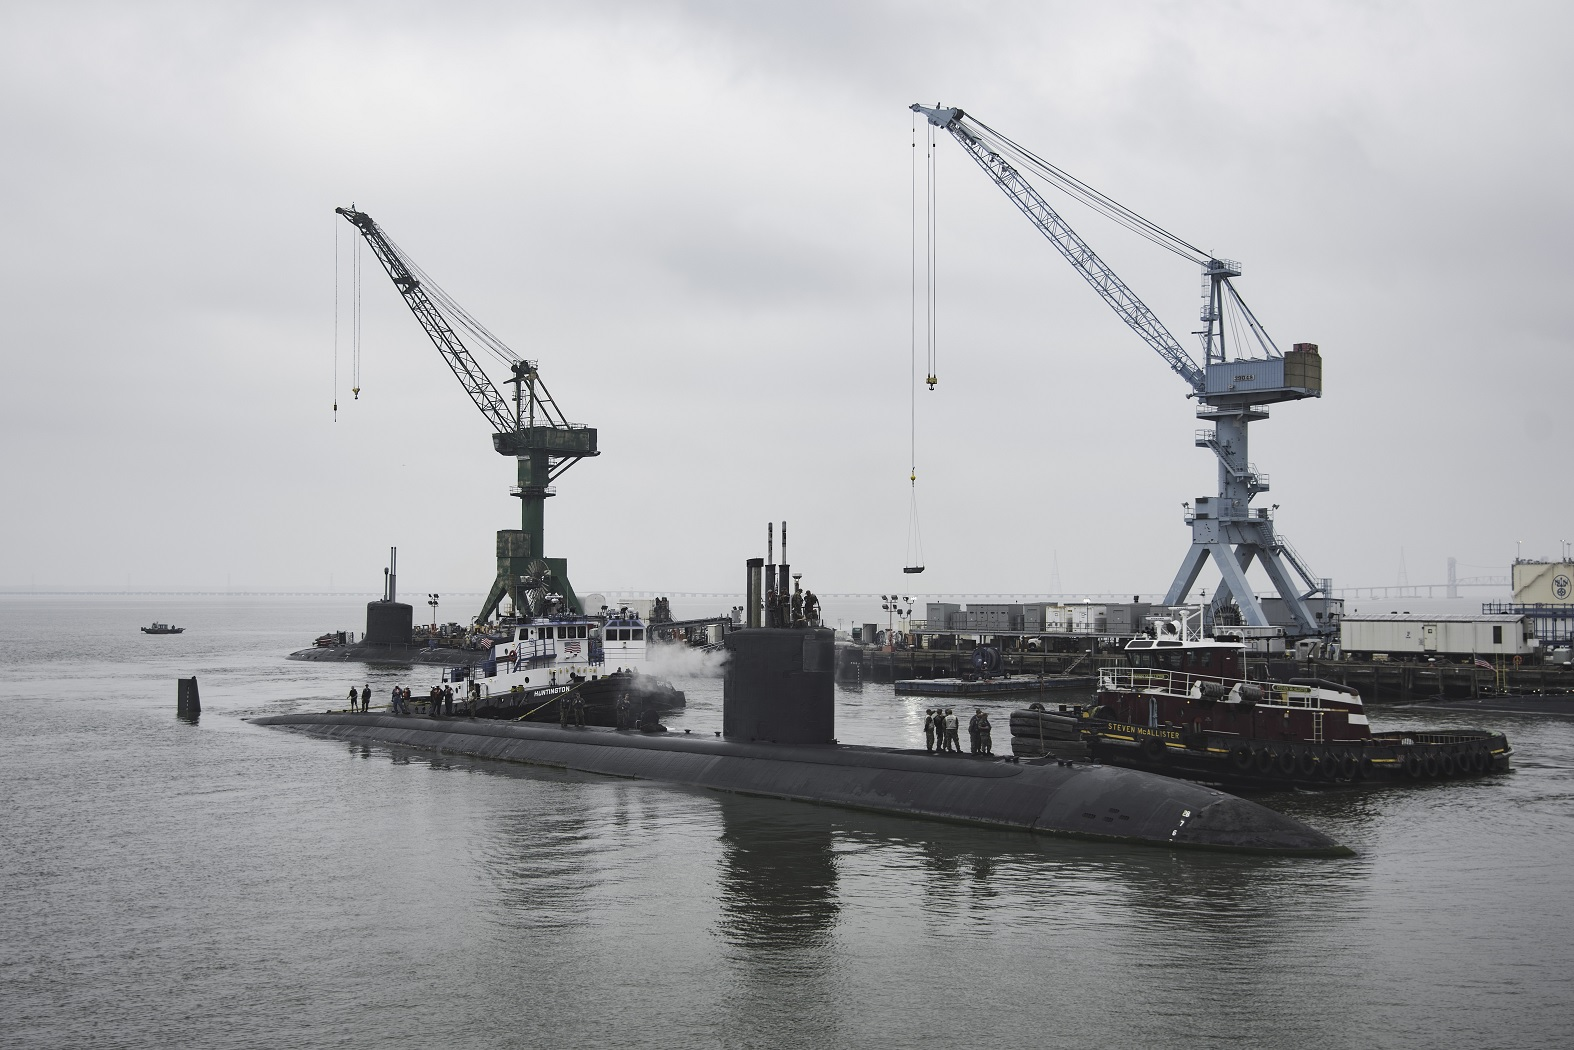 U.S. Appears To Lack Capability To Repair Its Nuclear Submarine Fleet